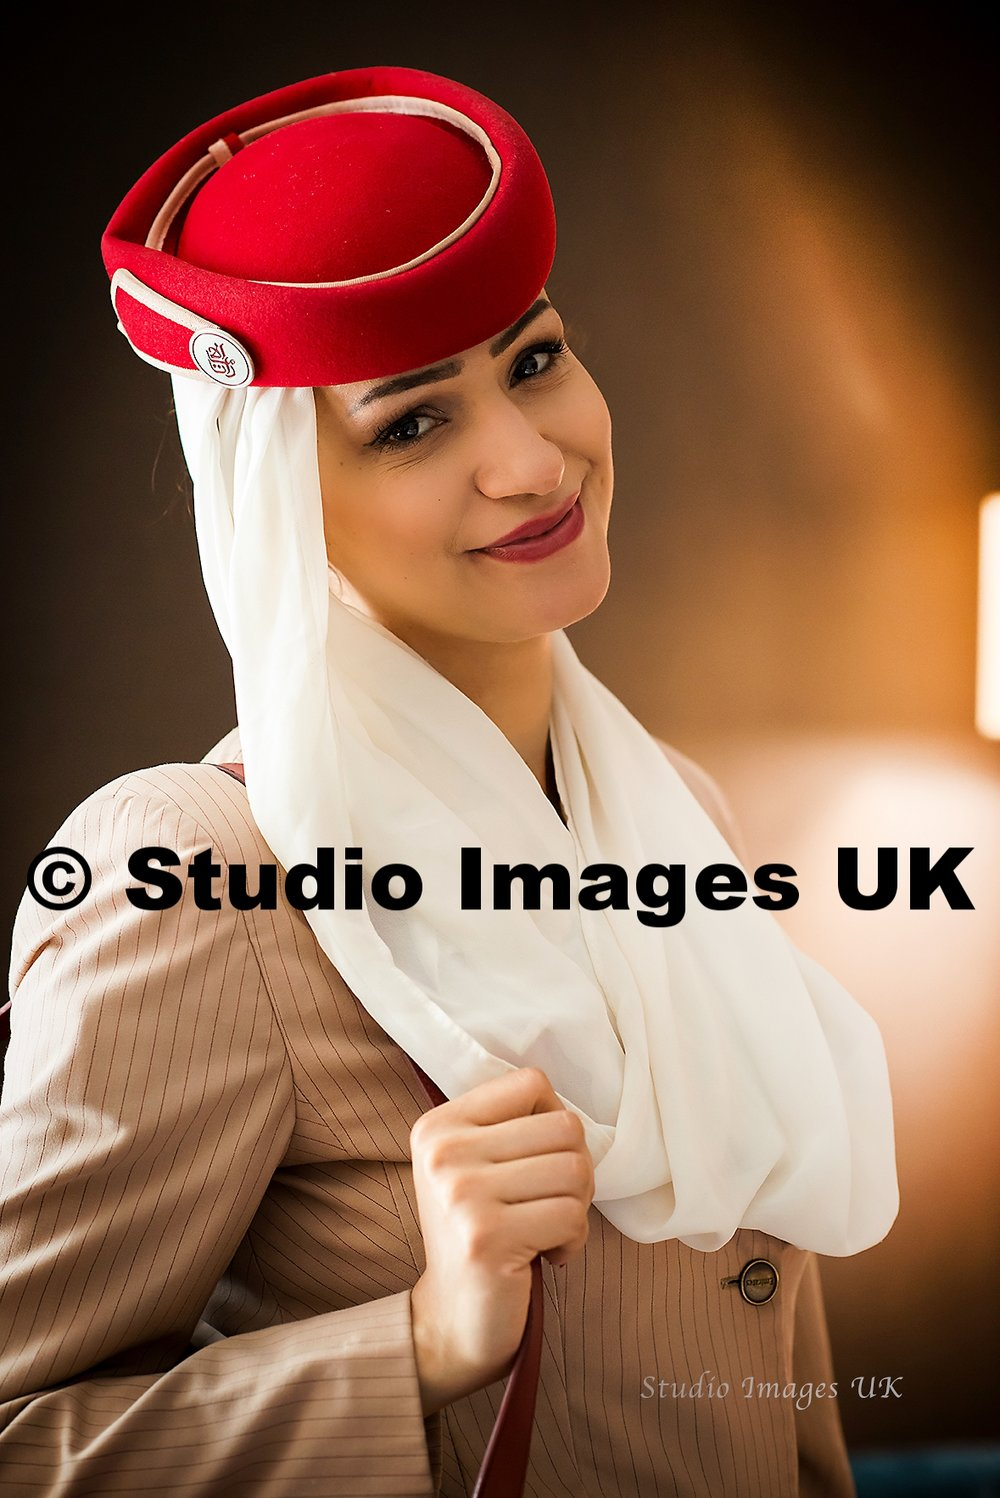 Emirates cabin crew photo requirement